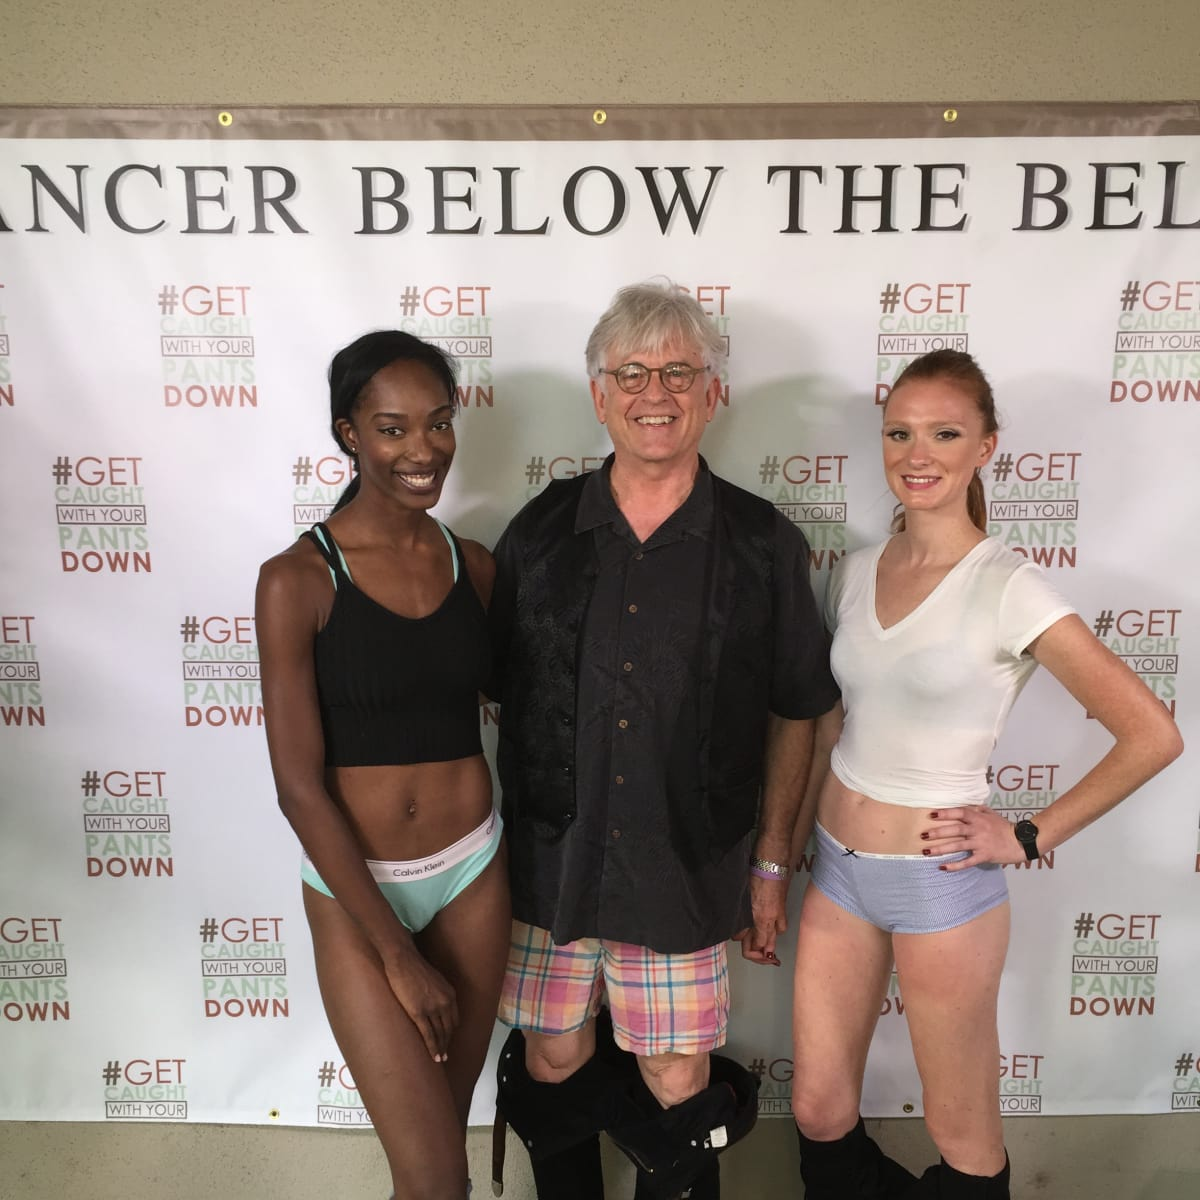 News, Shelby, Cancer Below the Belt, Sept. 2015, Courtney, Rich Lanier, Lauren